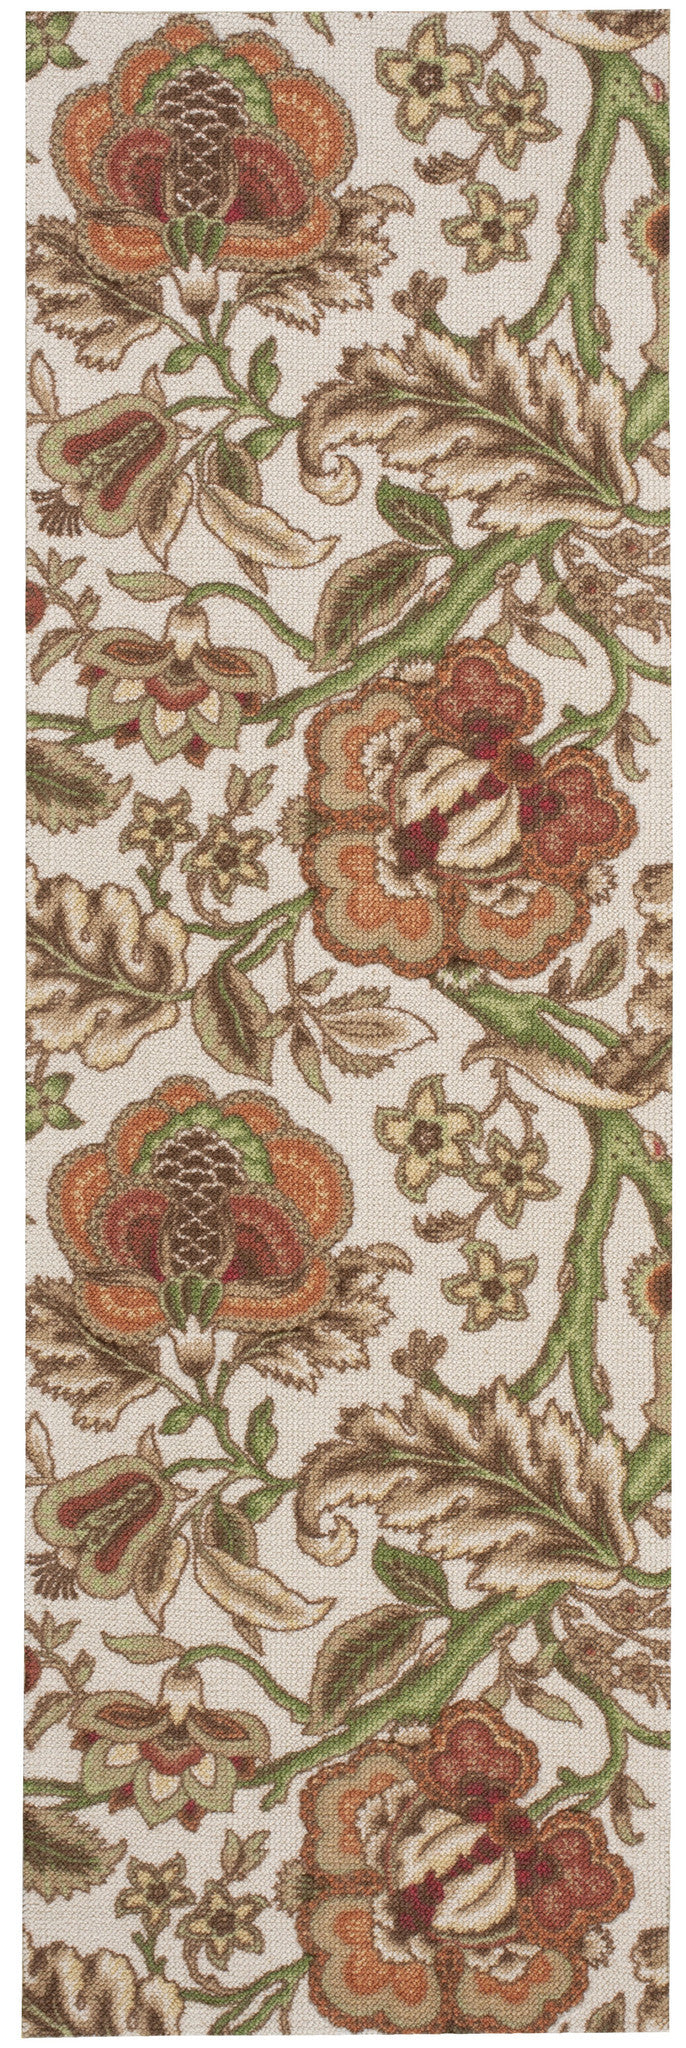 Waverly Global Awakening Imperial Dress Pear Area Rug By Nourison WGA01 PEAR